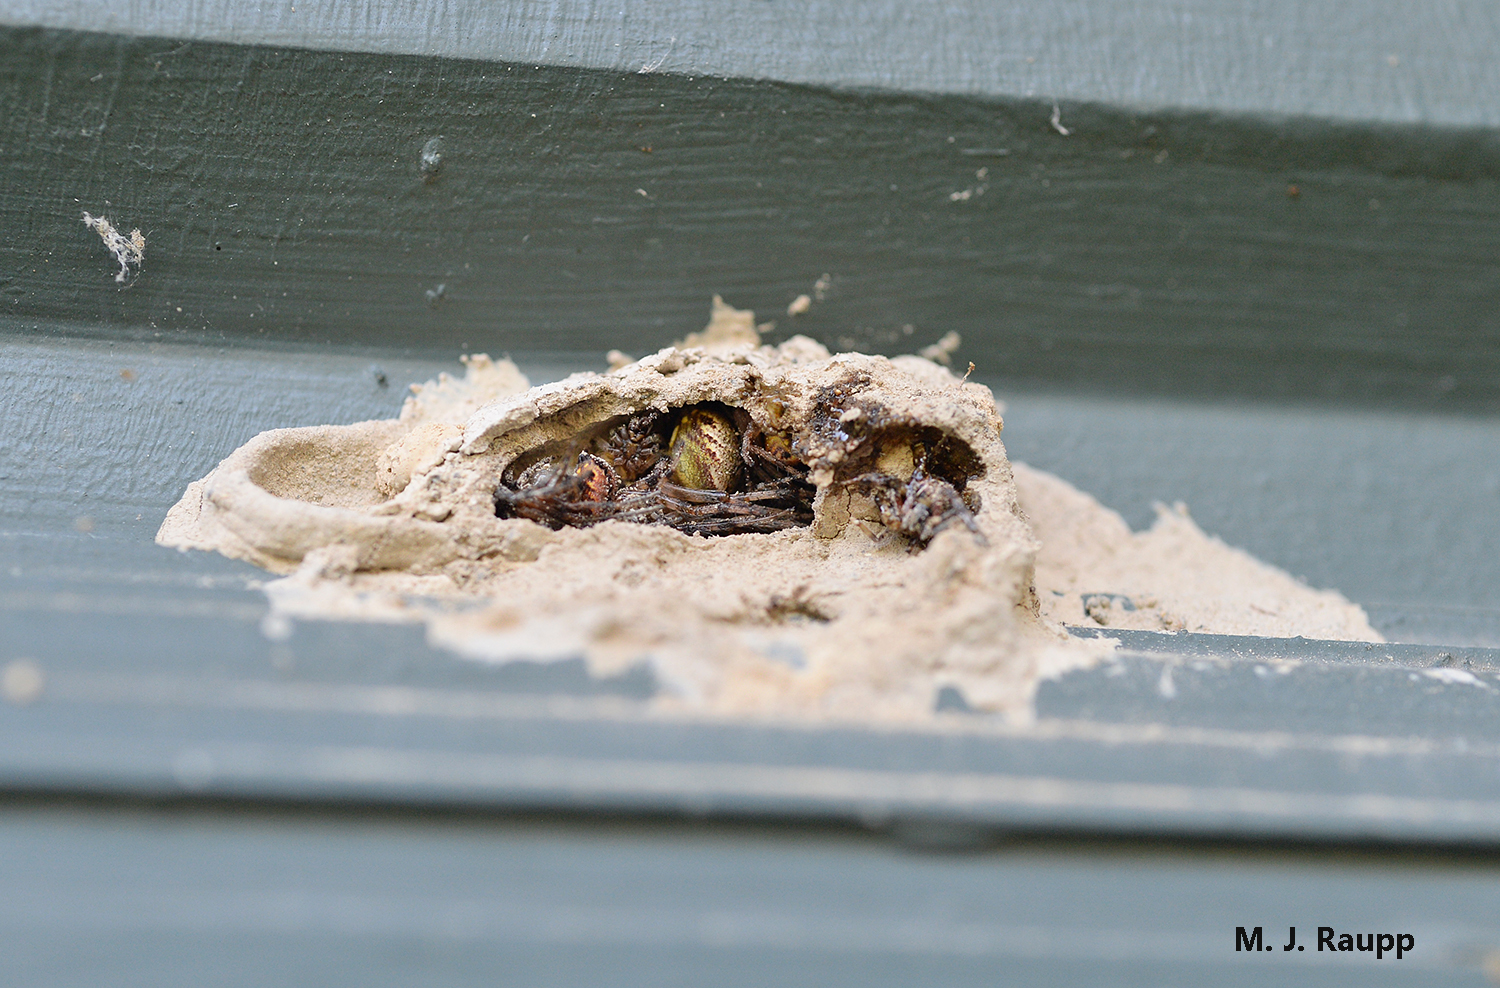 Several juicy paralyzed spiders await the hungry jaws of a mud dauber larva inside their clay crypt.